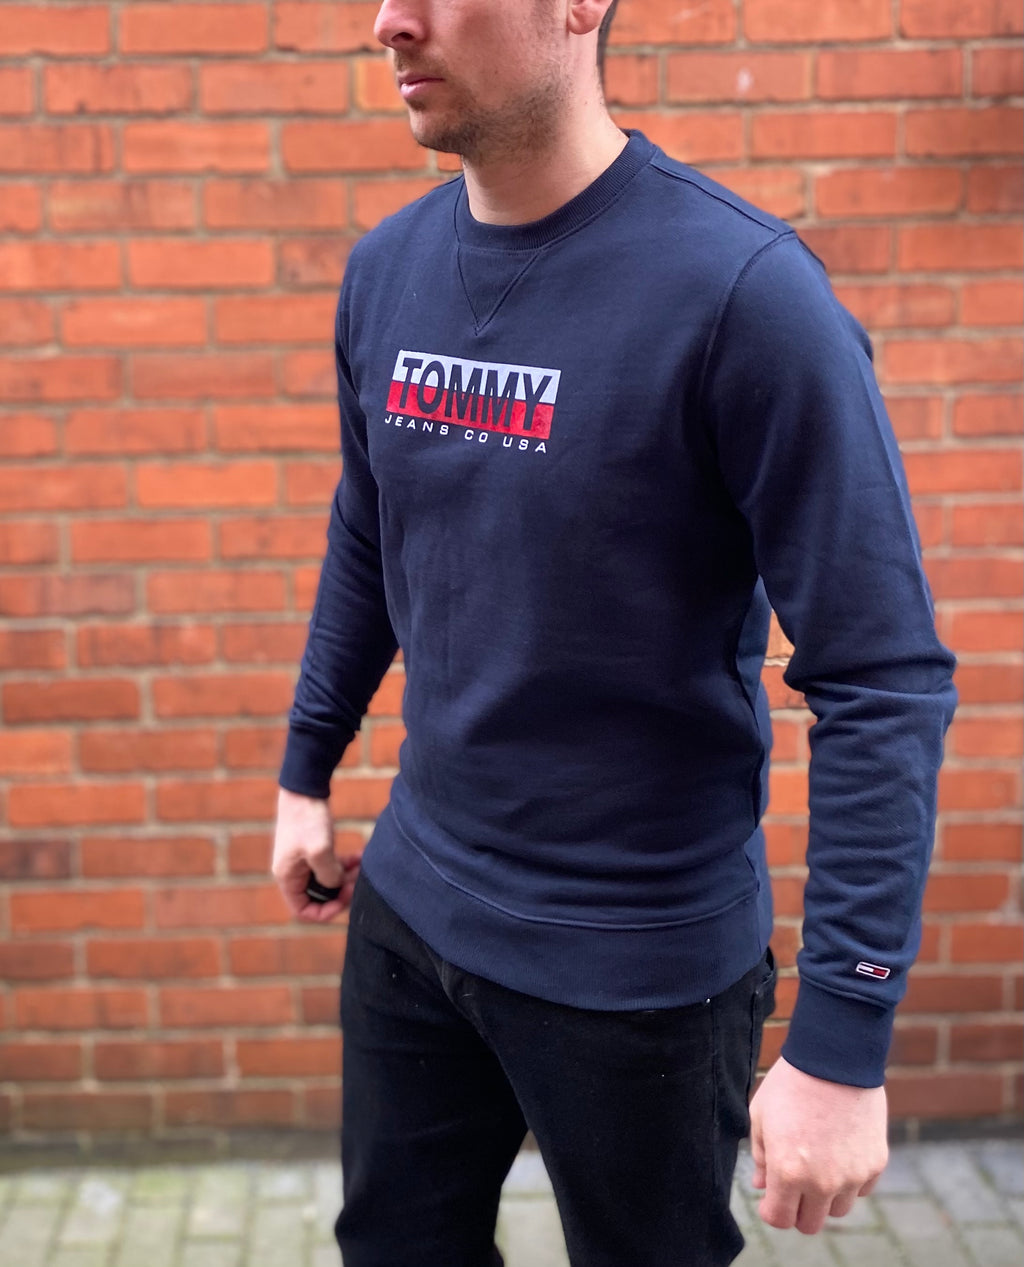 Navy Tommy Hilfiger Spellout jumper / sweater with Tommy Jeans Co USA embroidered across the chest and Tommy logo on the end of the sleeve